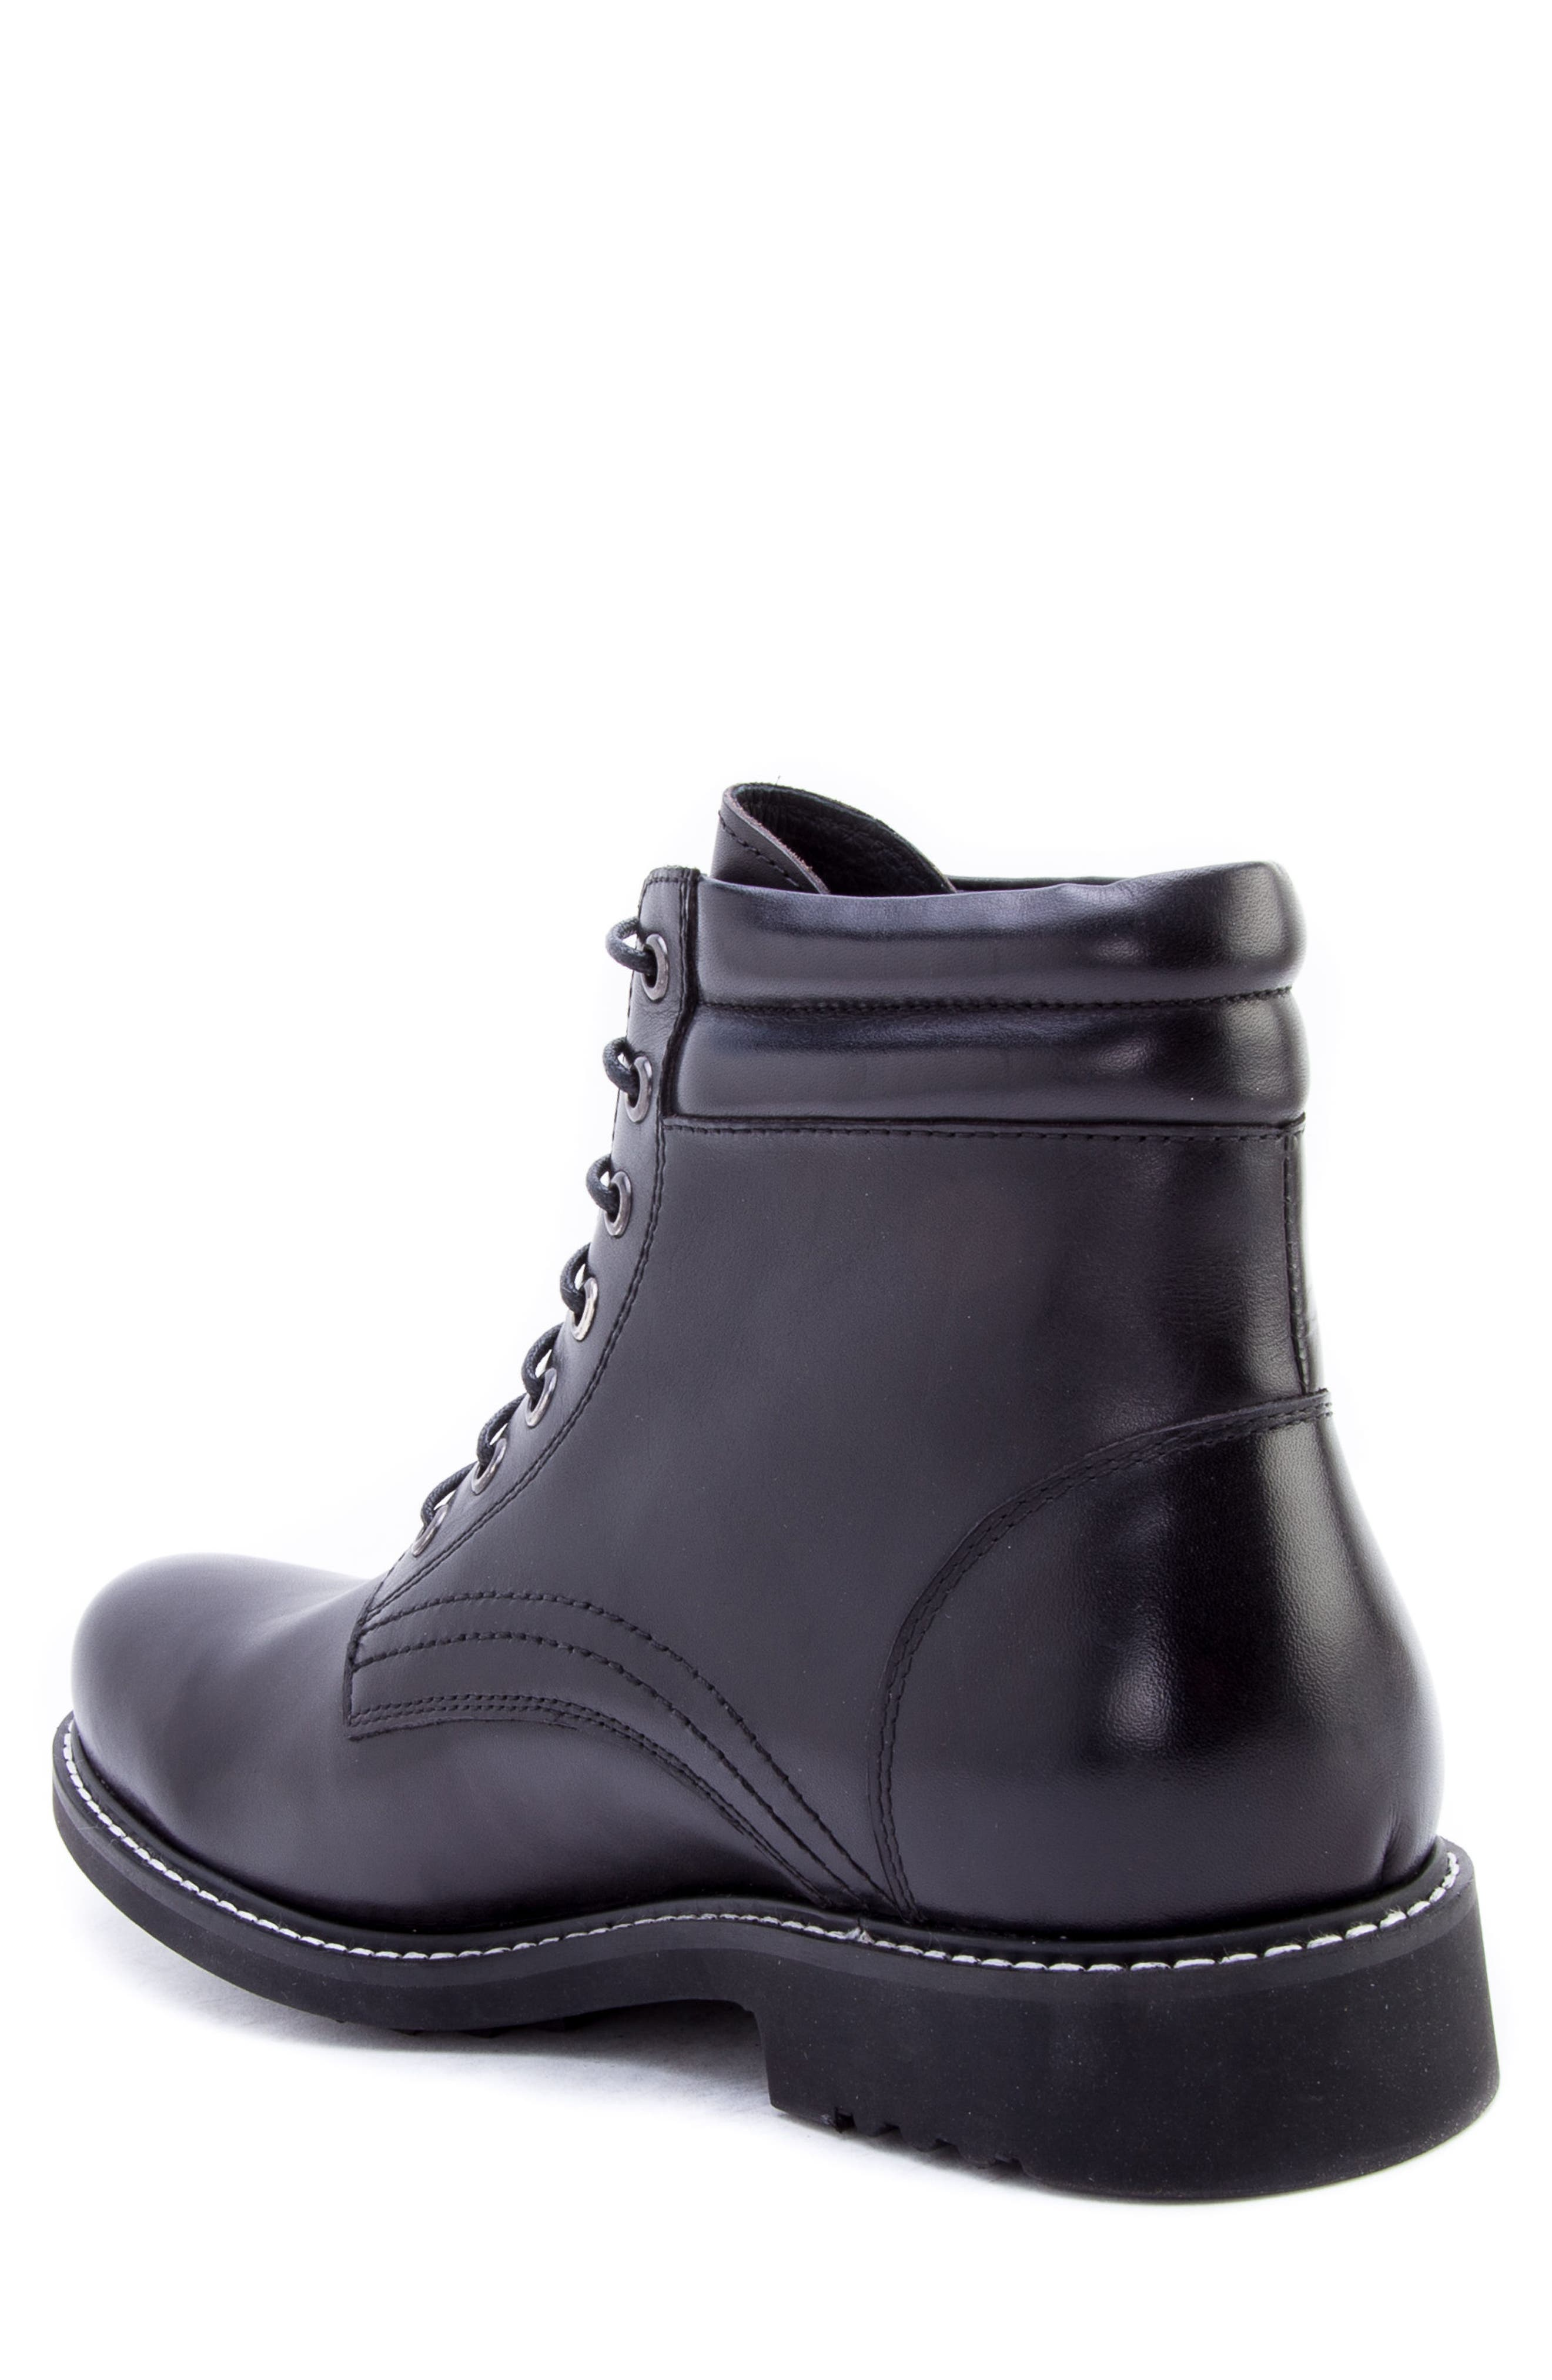 Zucchi Boot,                             Alternate thumbnail 2, color,                             BLACK LEATHER